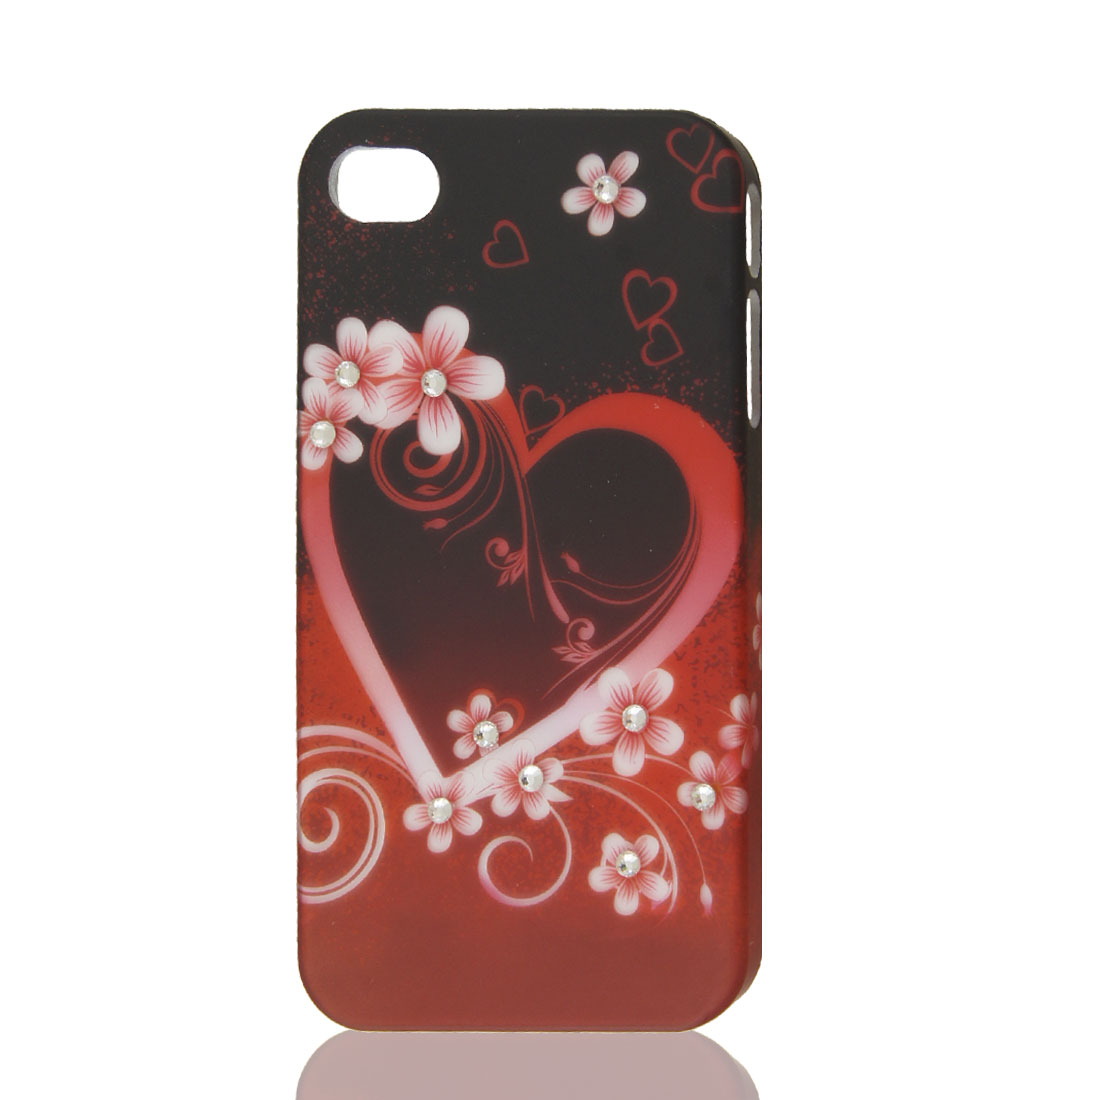 Orange Red Glitter Rhinestone Heart Flower Hard Back Case Cover for iPhone 4 4G